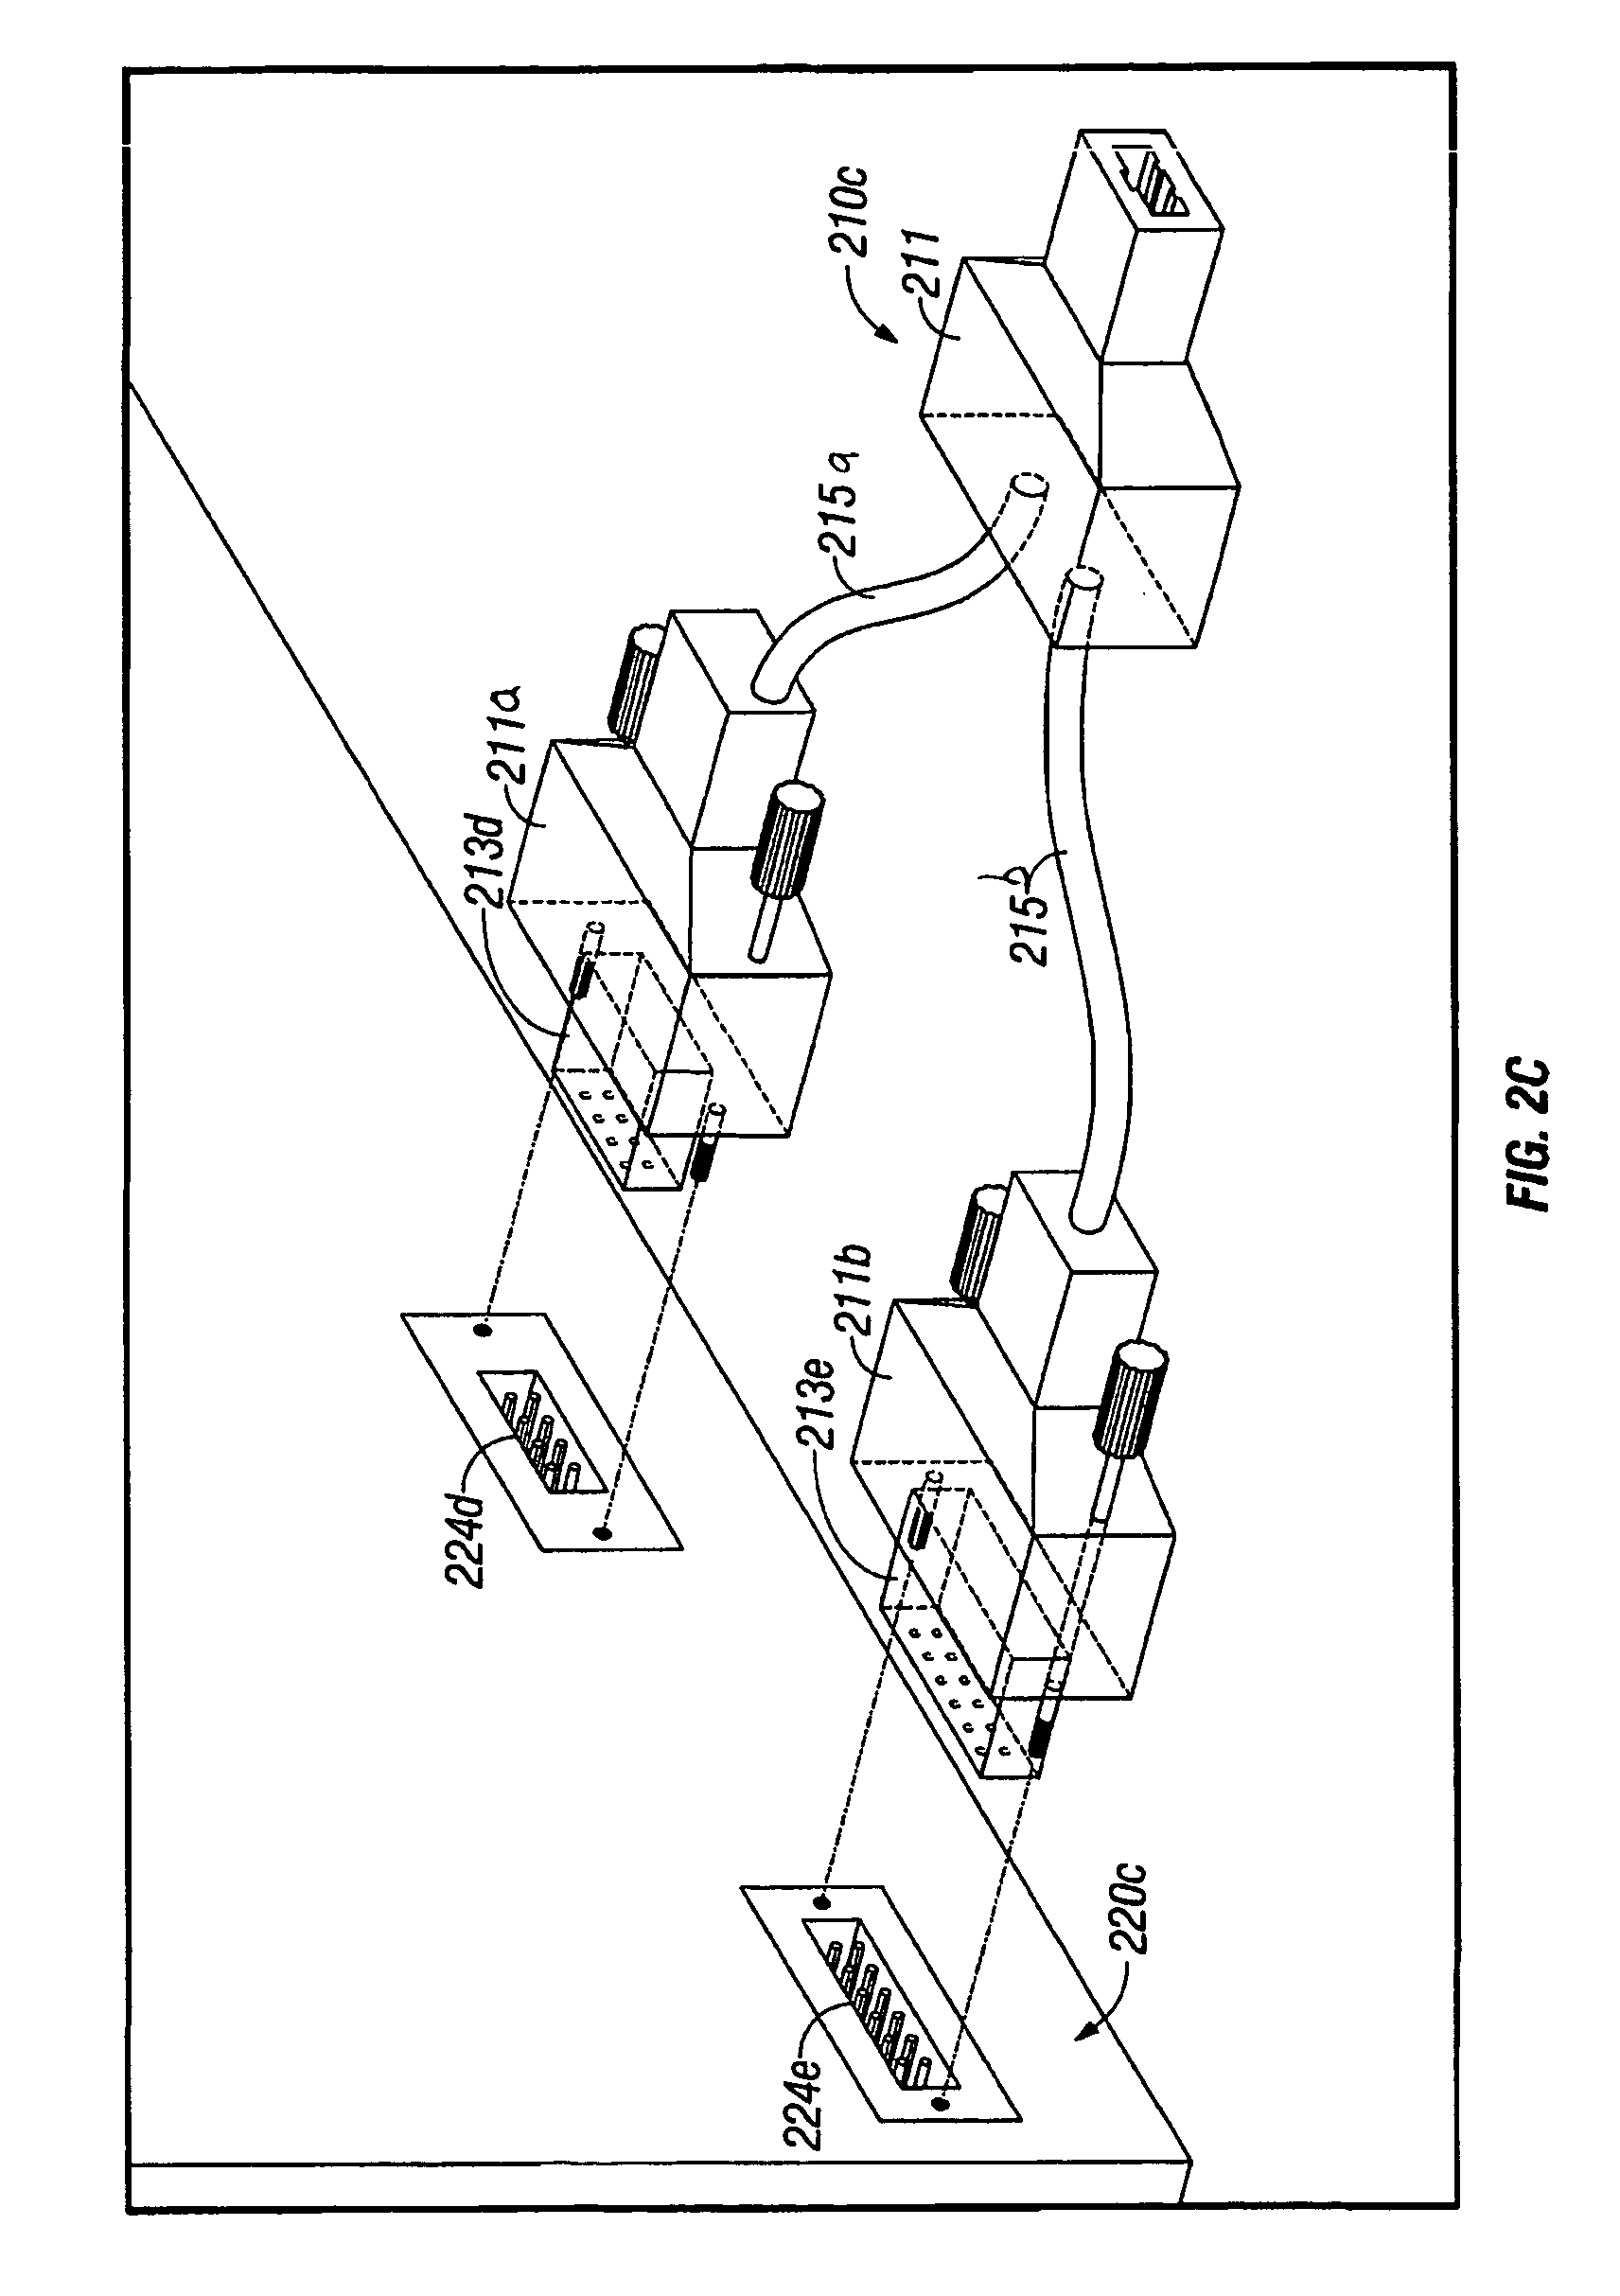 patent us ecg lead set and ecg adapter system google patent drawing